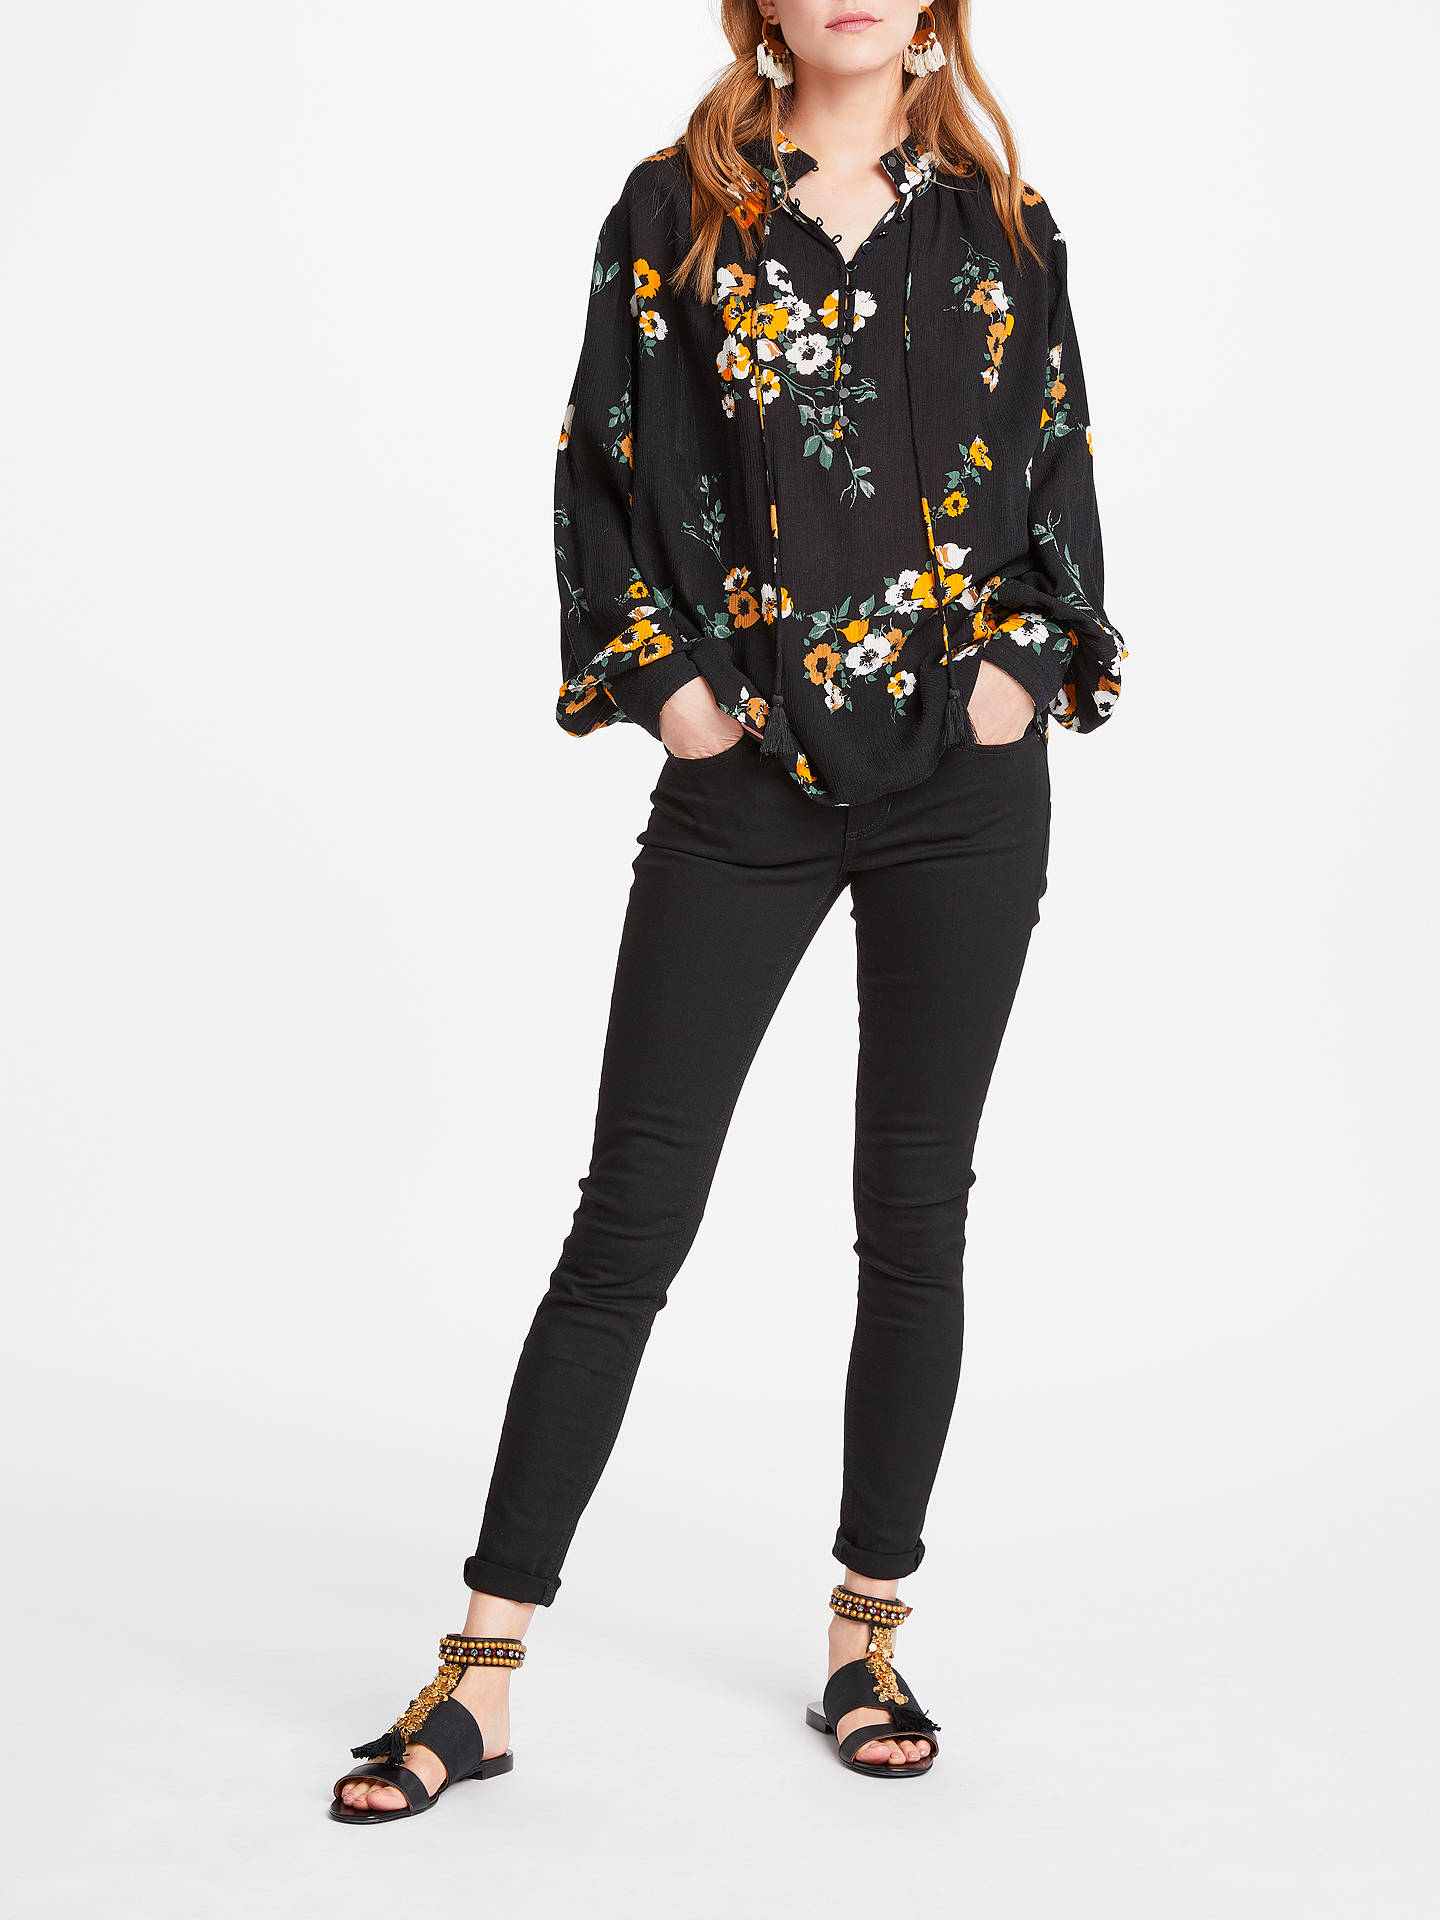 BuyAND/OR Abbot Kinney Skinny Jeans, Black, 26 Online at johnlewis.com